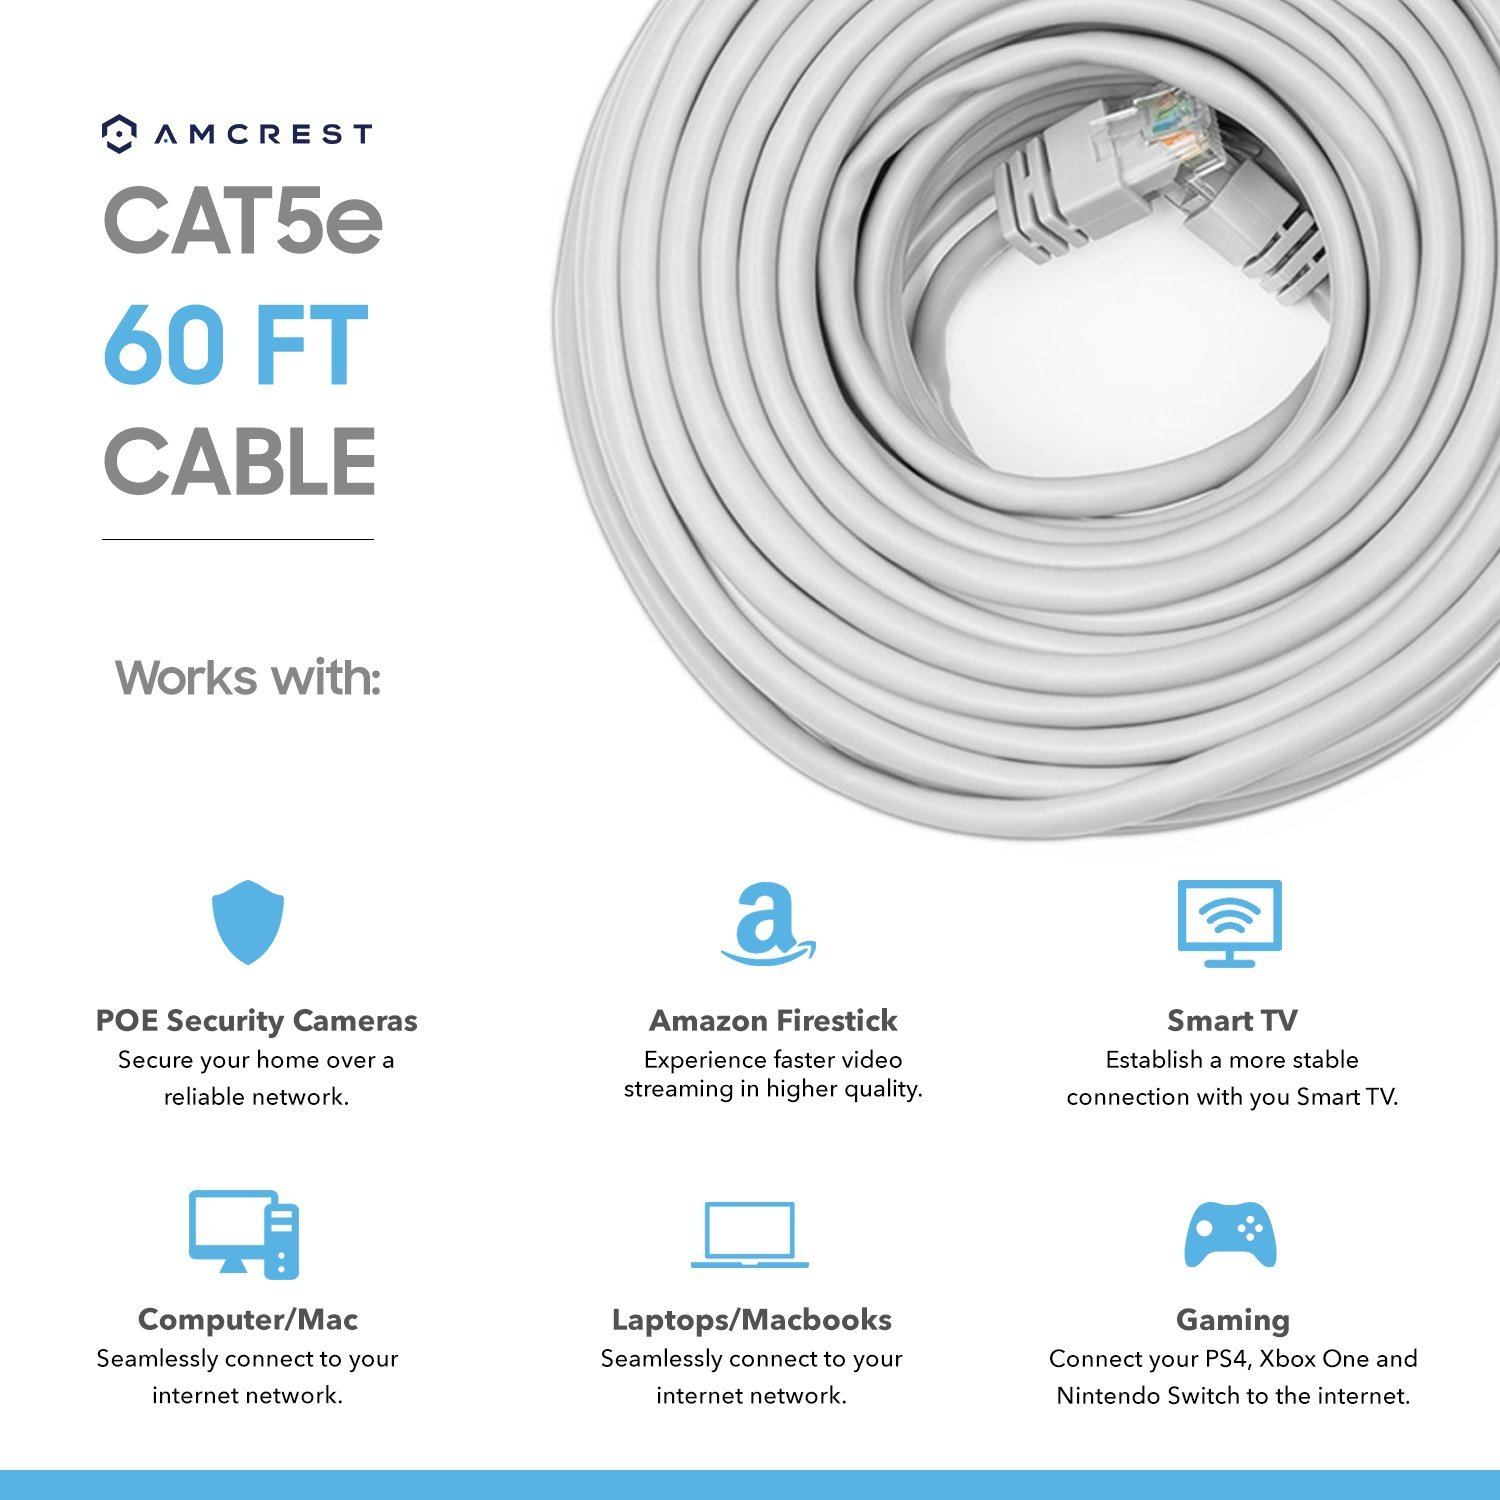 Wiring House For Cable And Internet Cat5e Home Diagrams Amazon Com Amcrest 60ft Ethernet High Construction